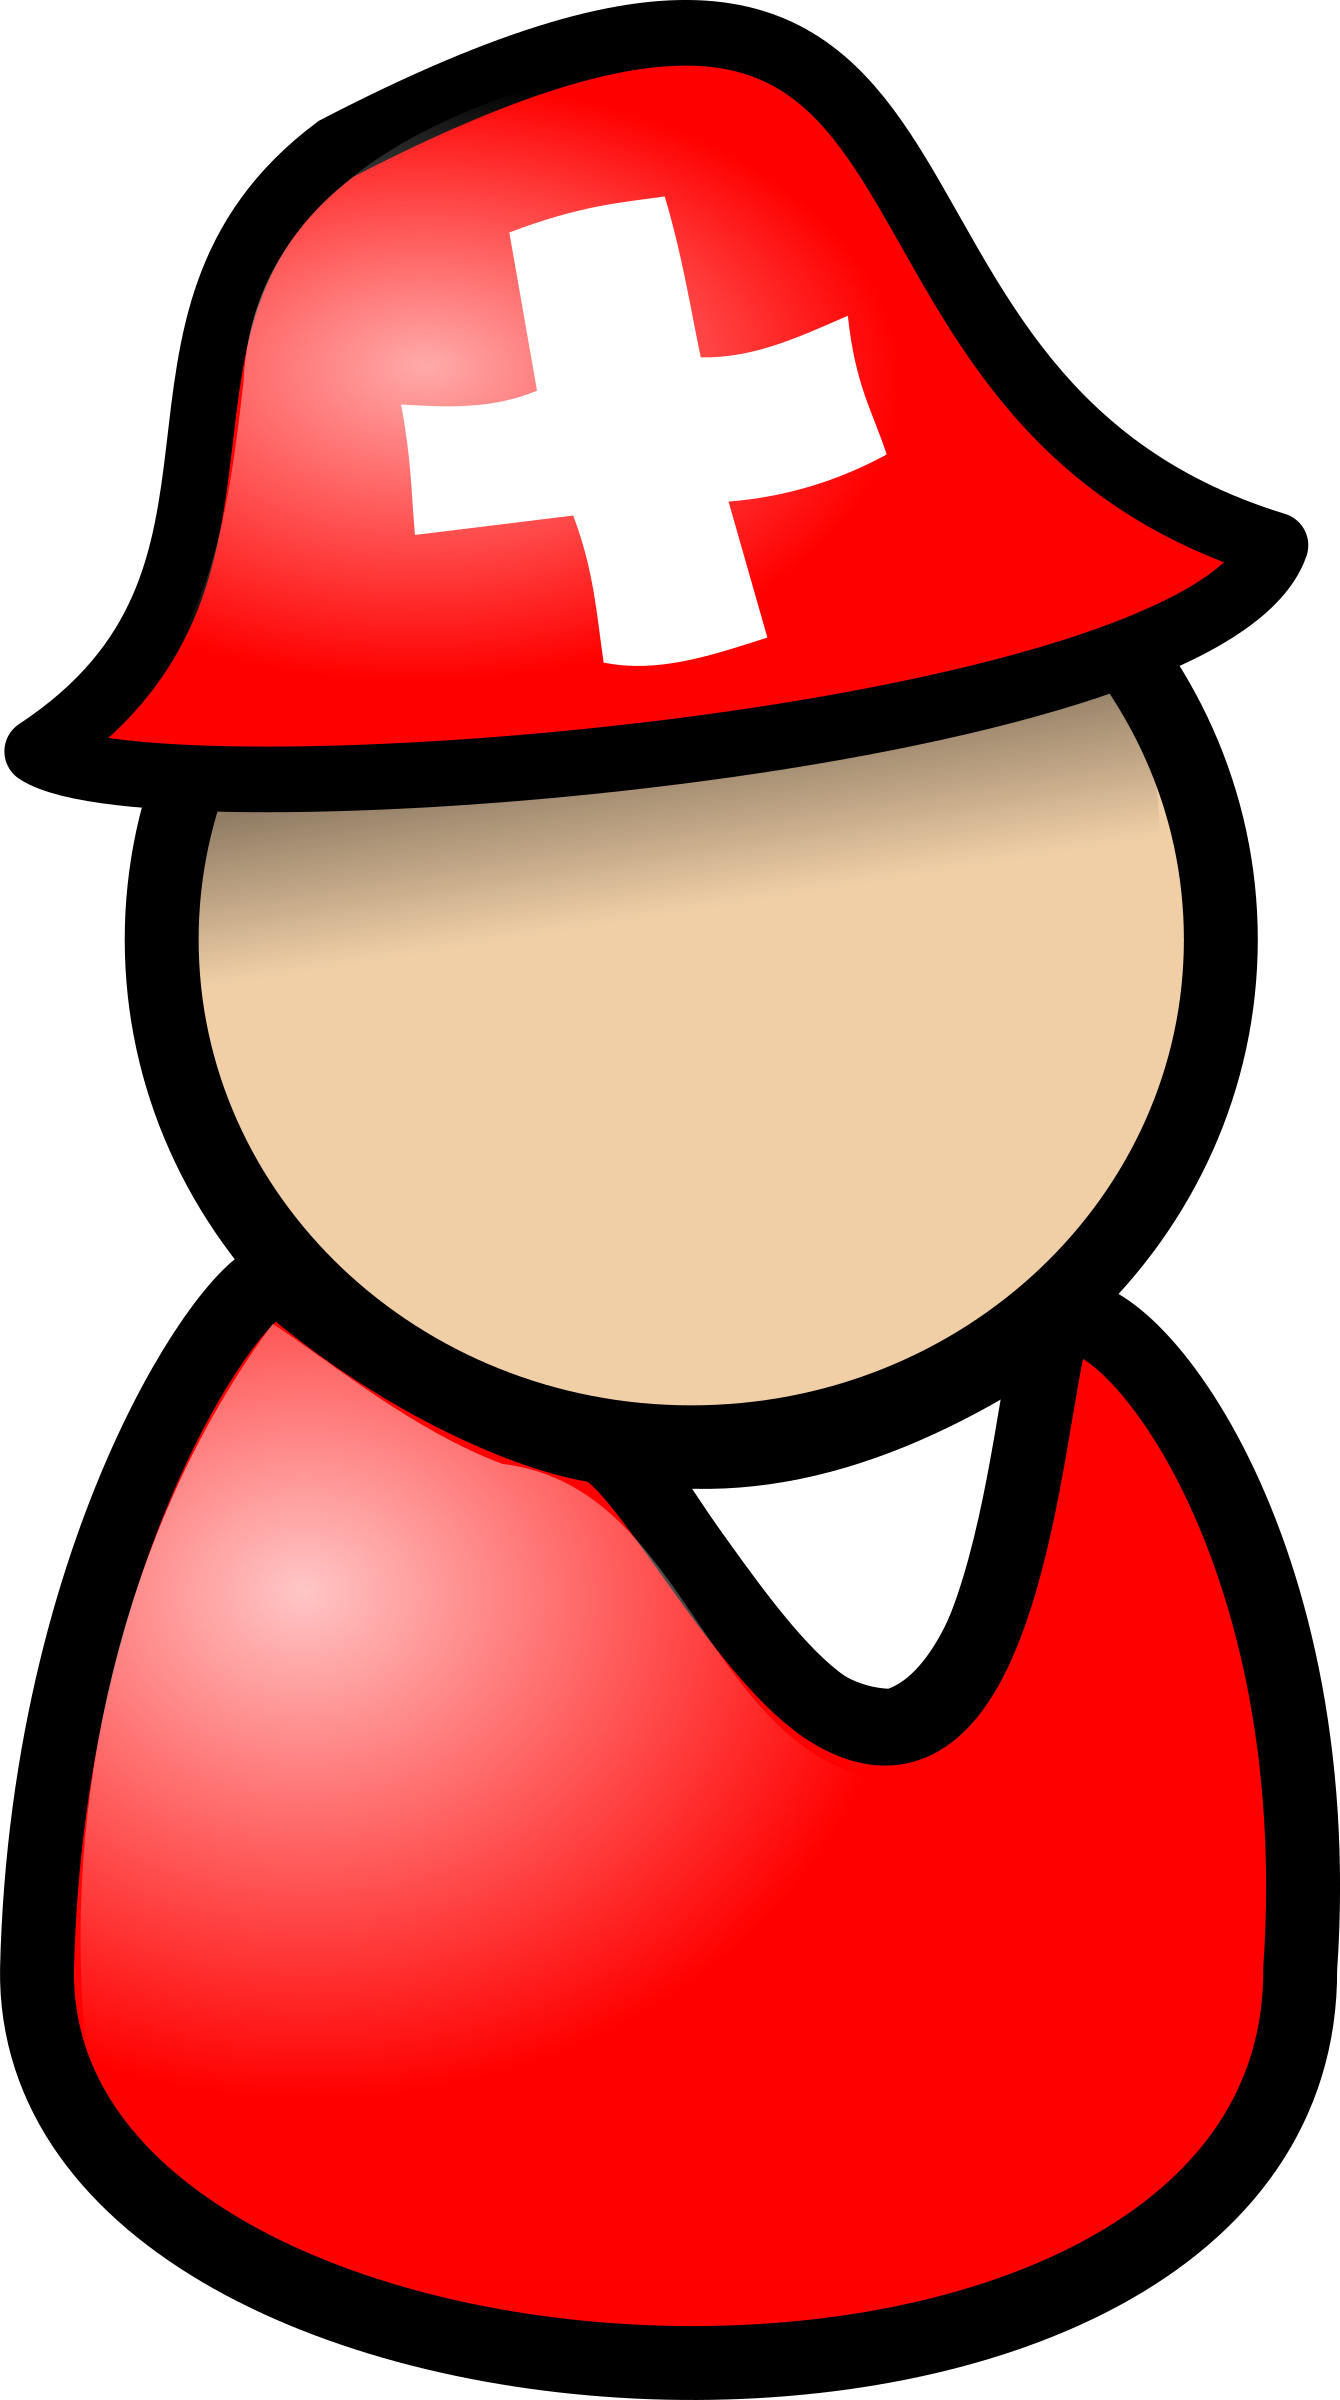 Hat clipart tourist. Swiss icons png free